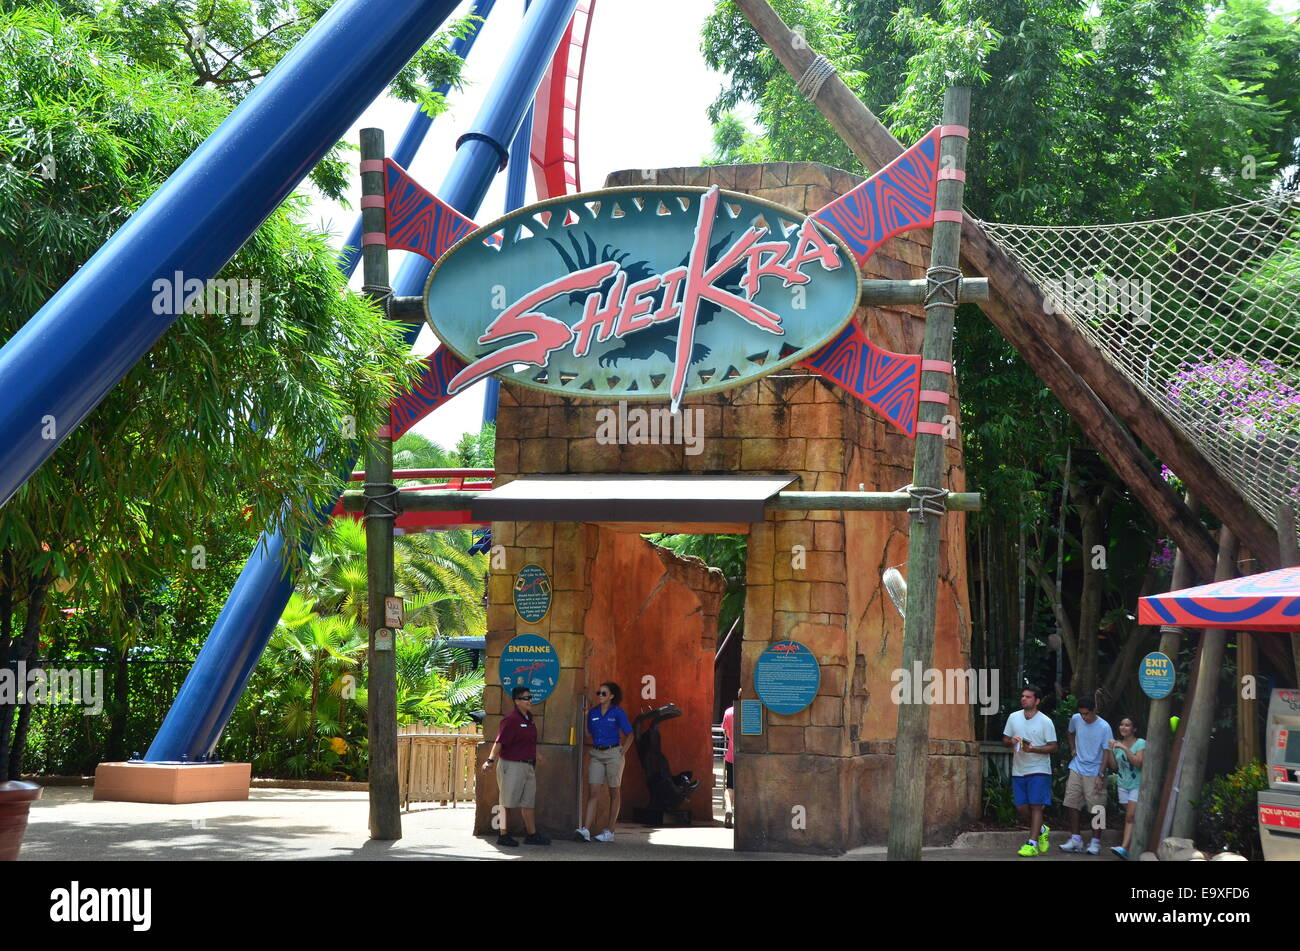 Sheikra Roller Coaster Ride At Busch Gardens Tampa Florida Usa